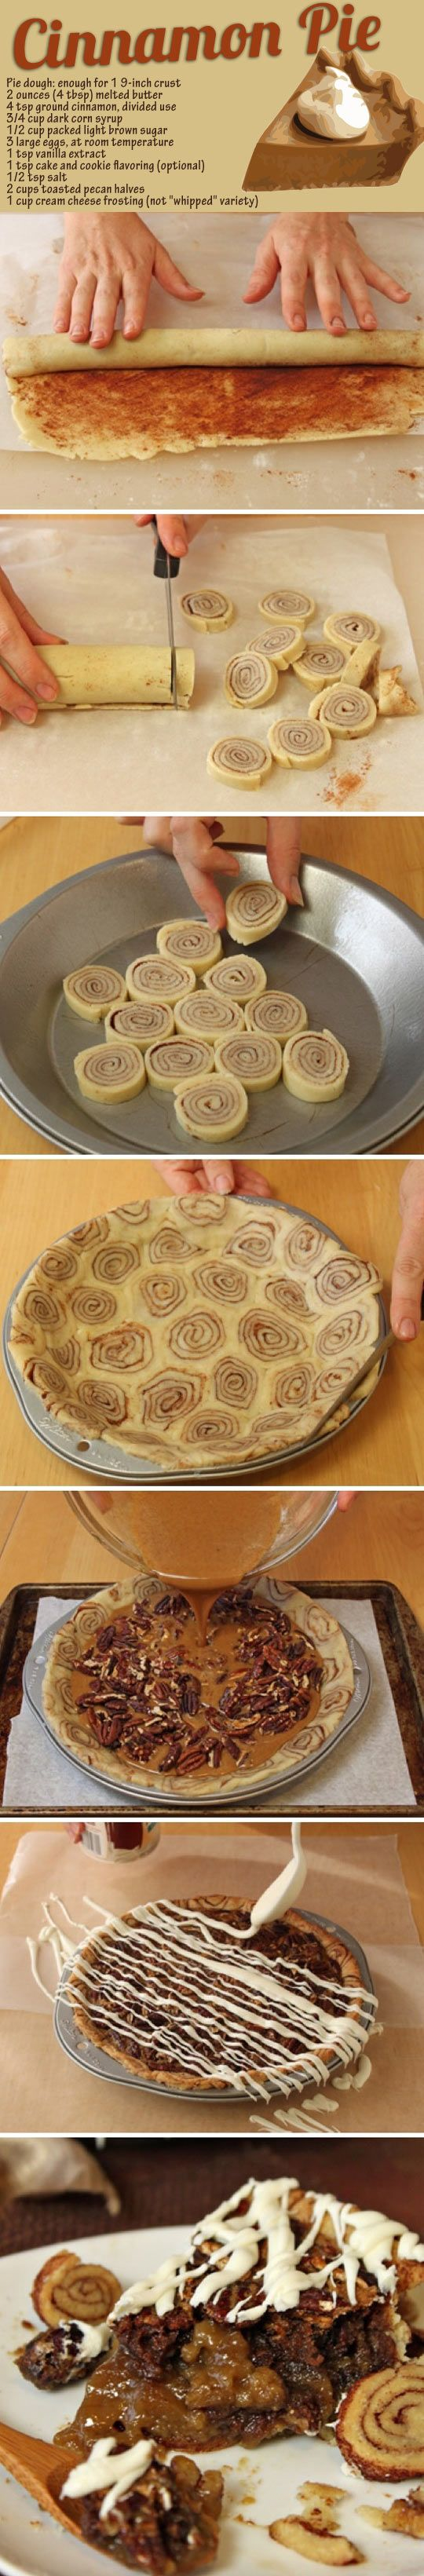 cool-cinnamon-pie-rolls-recipe